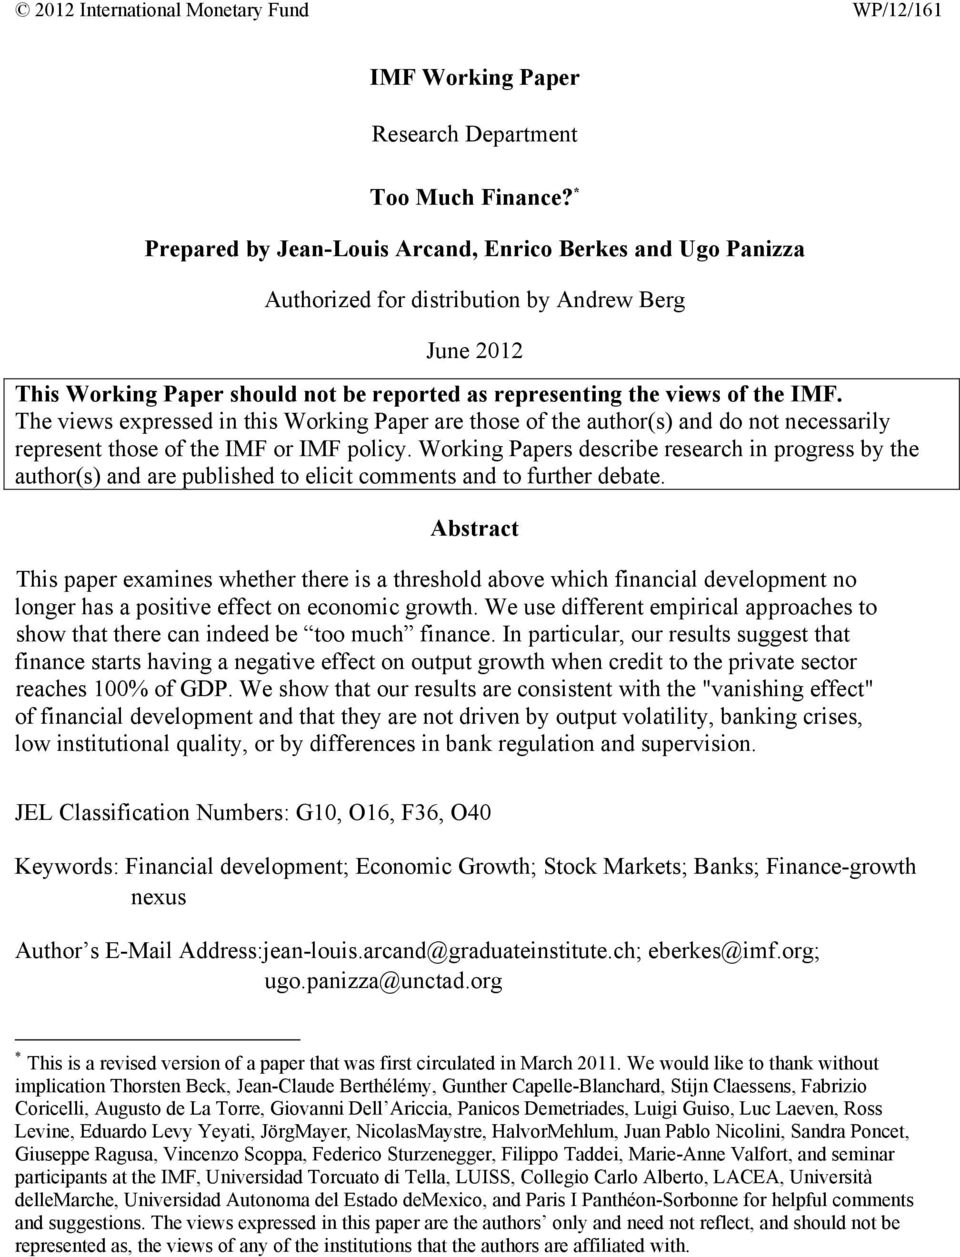 The views expressed in this Working Paper are those of the author(s) and do not necessarily represent those of the IMF or IMF policy.